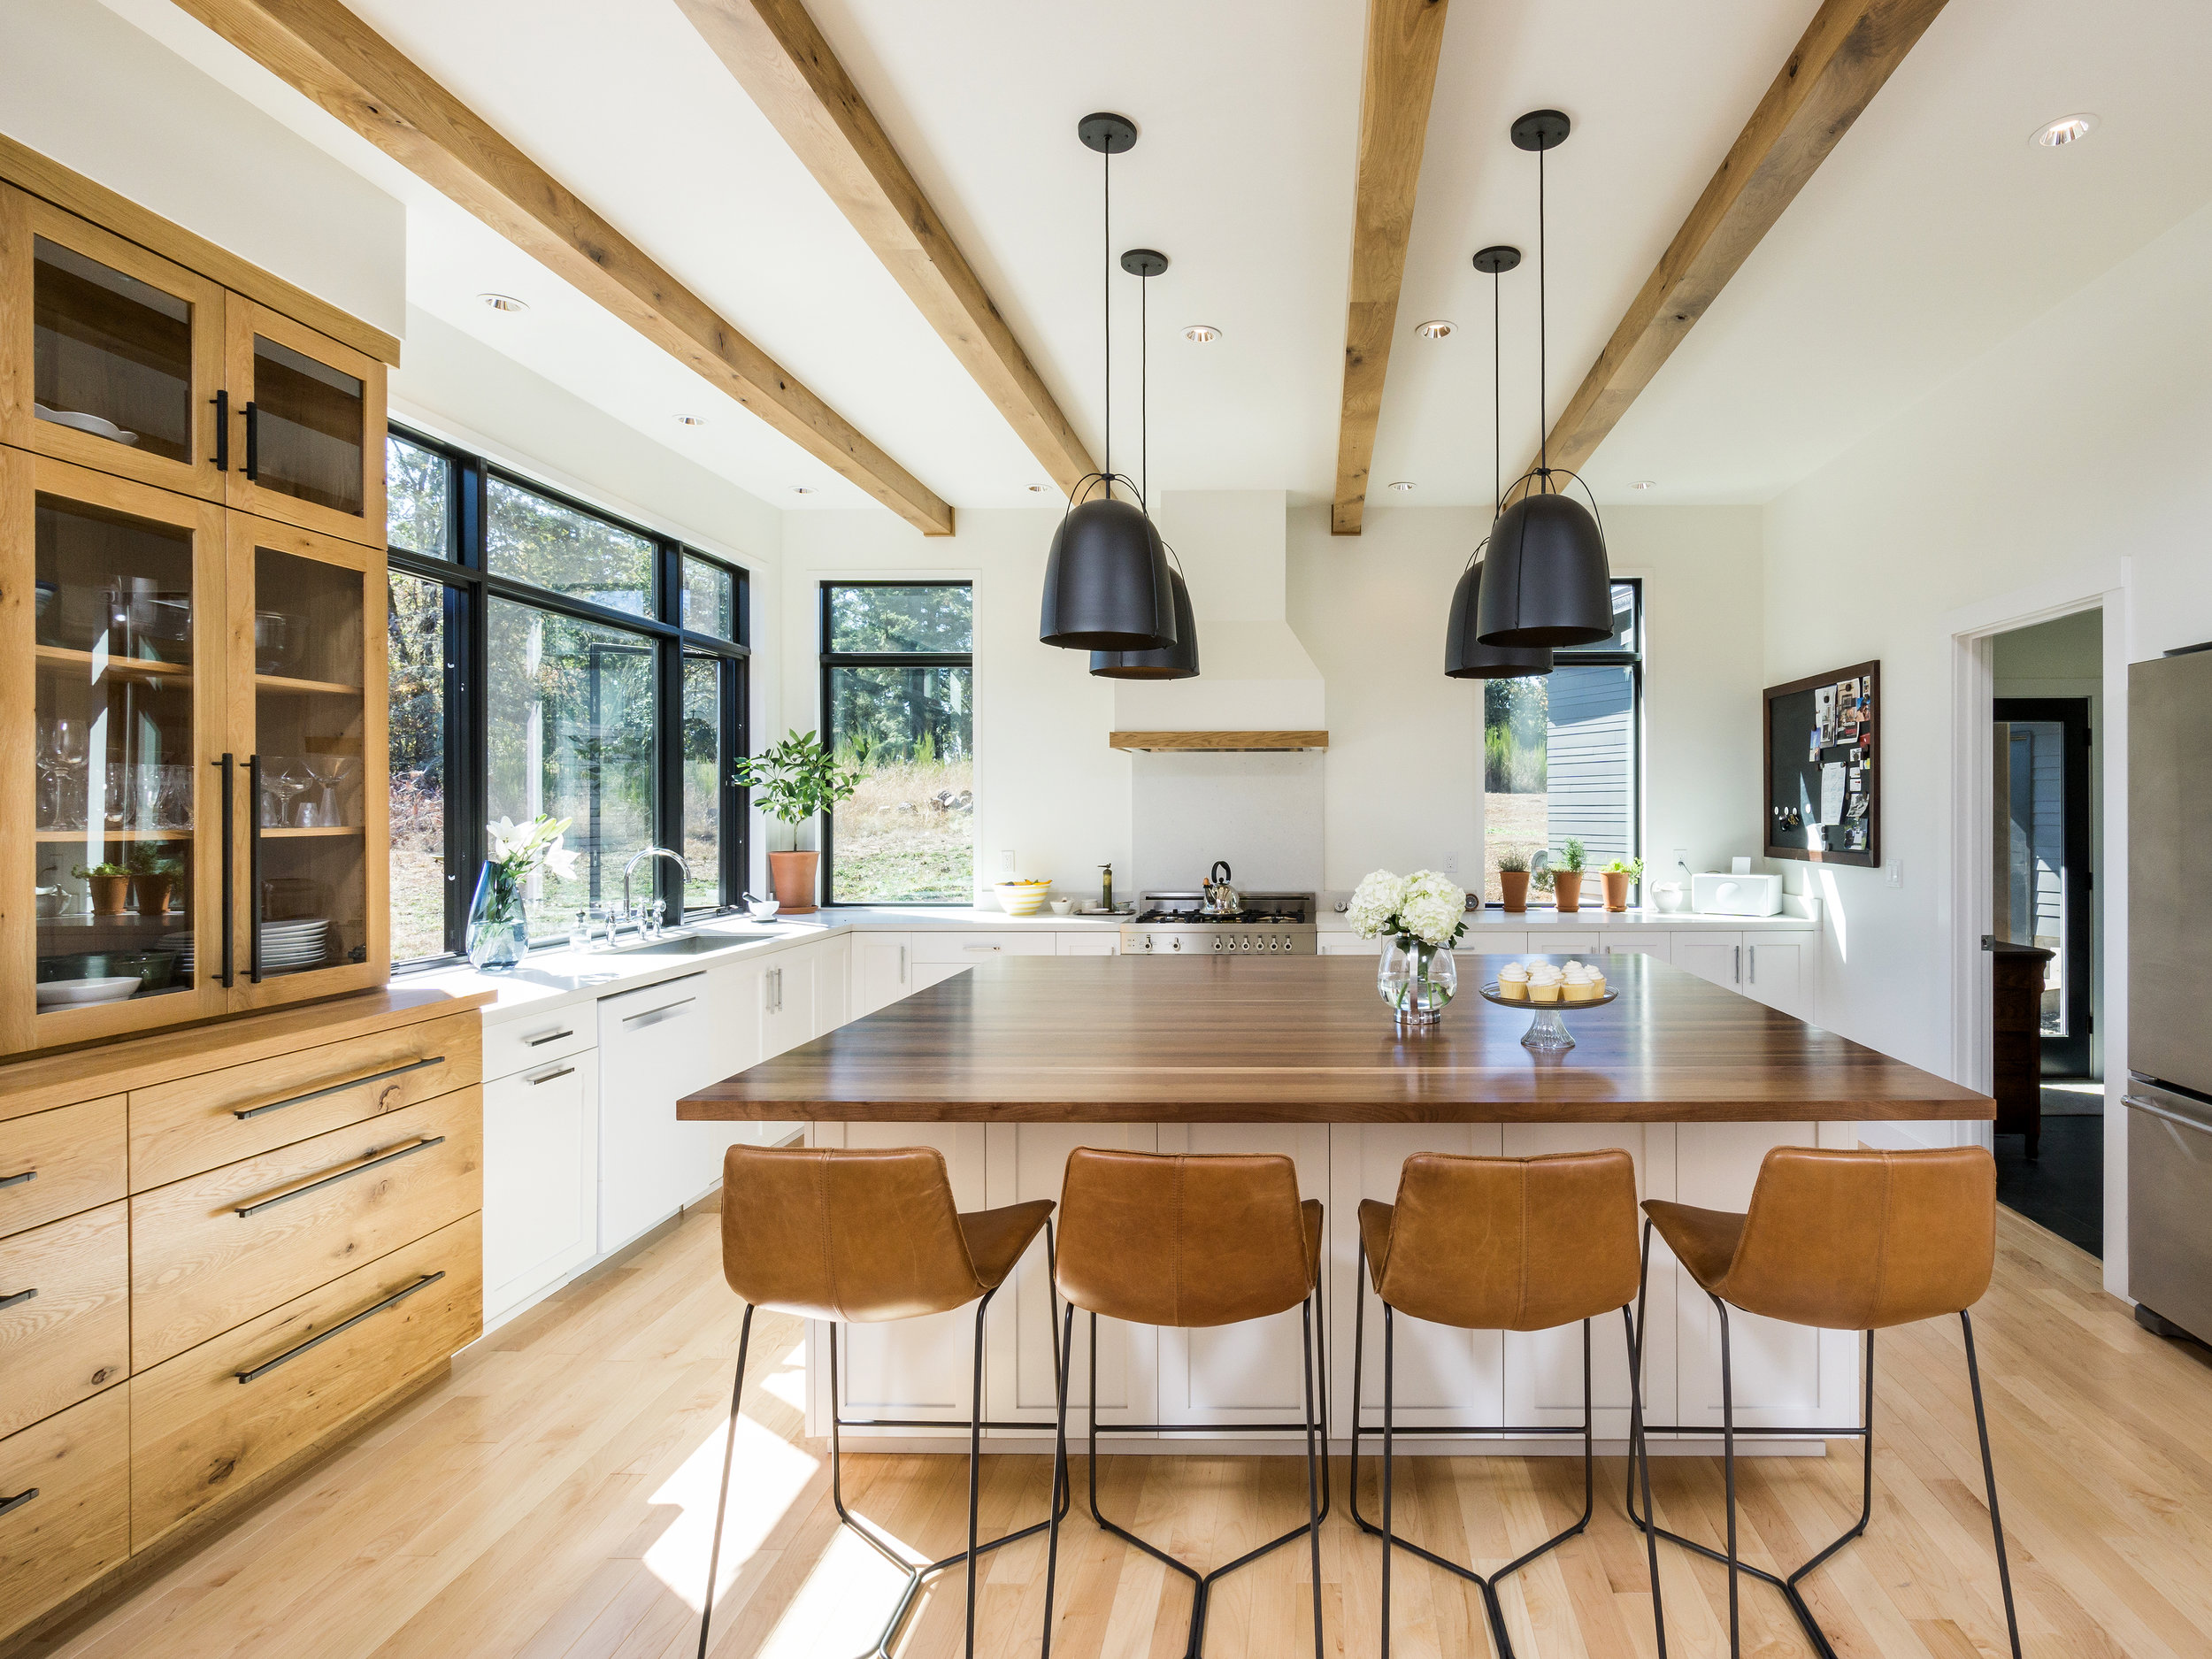 HGTV's Best Kitchen + Dining winner